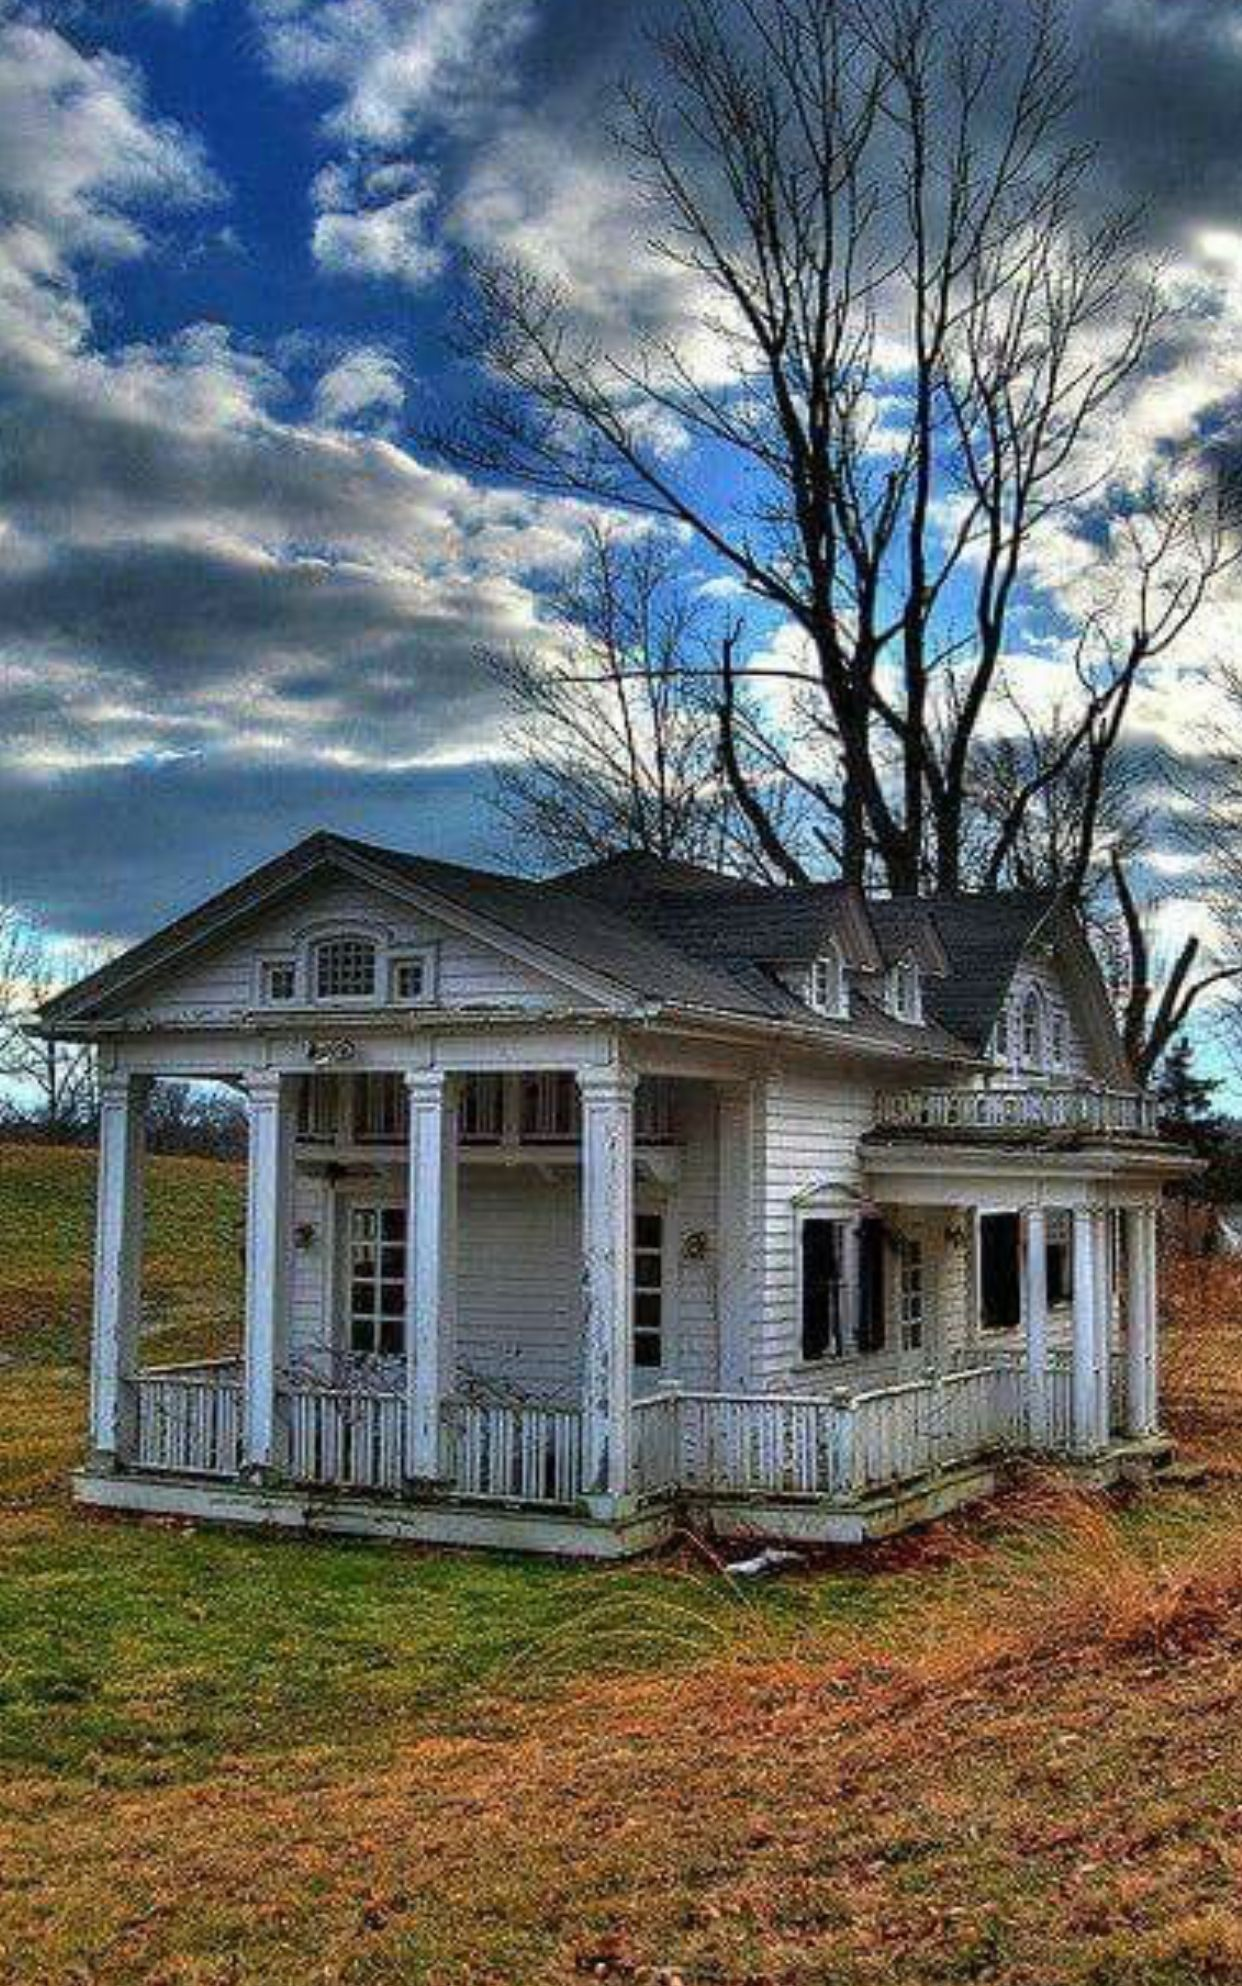 Pin By Lisa Lewis On Condemned Abandoned Beautiful Old Farm Houses Old Abandoned Houses Abandoned Houses